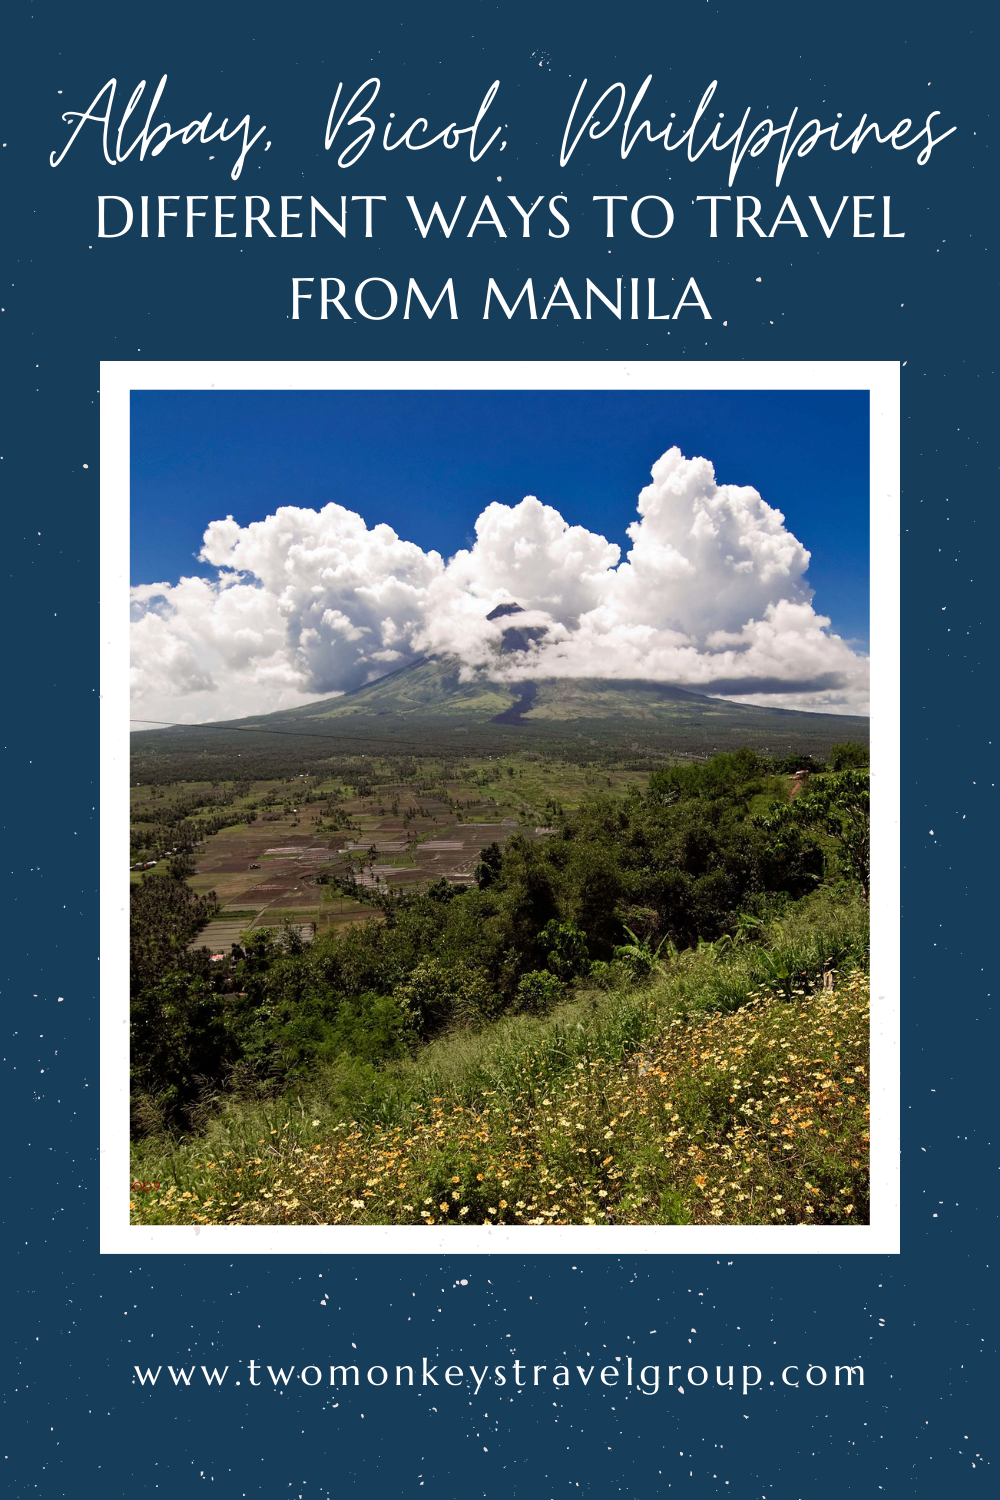 Different Ways to Travel from Manila to Albay, Bicol, Philippines